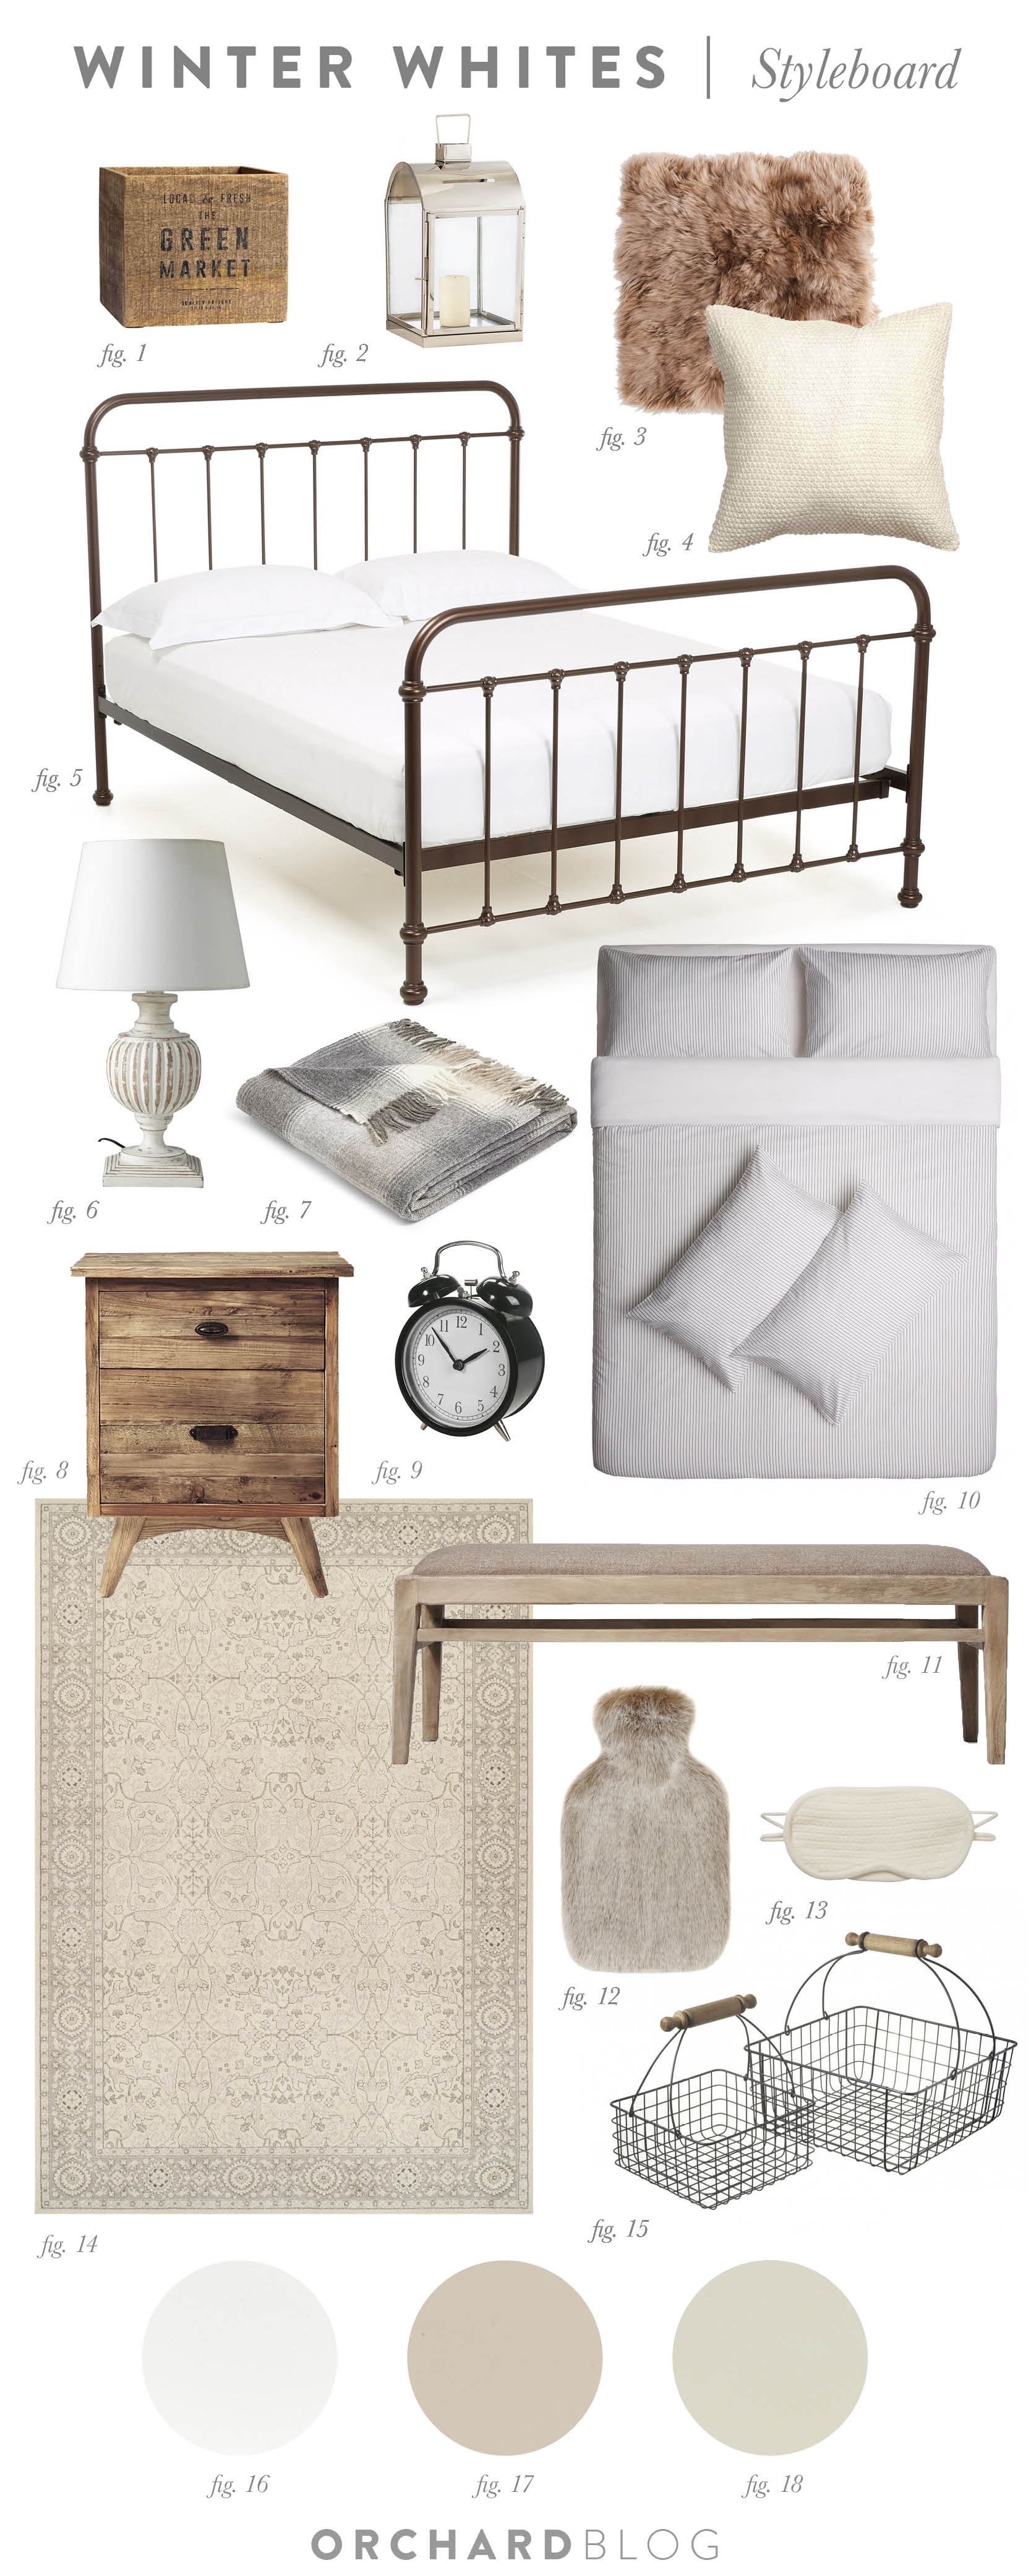 Winter Whites Bedroom Scheme